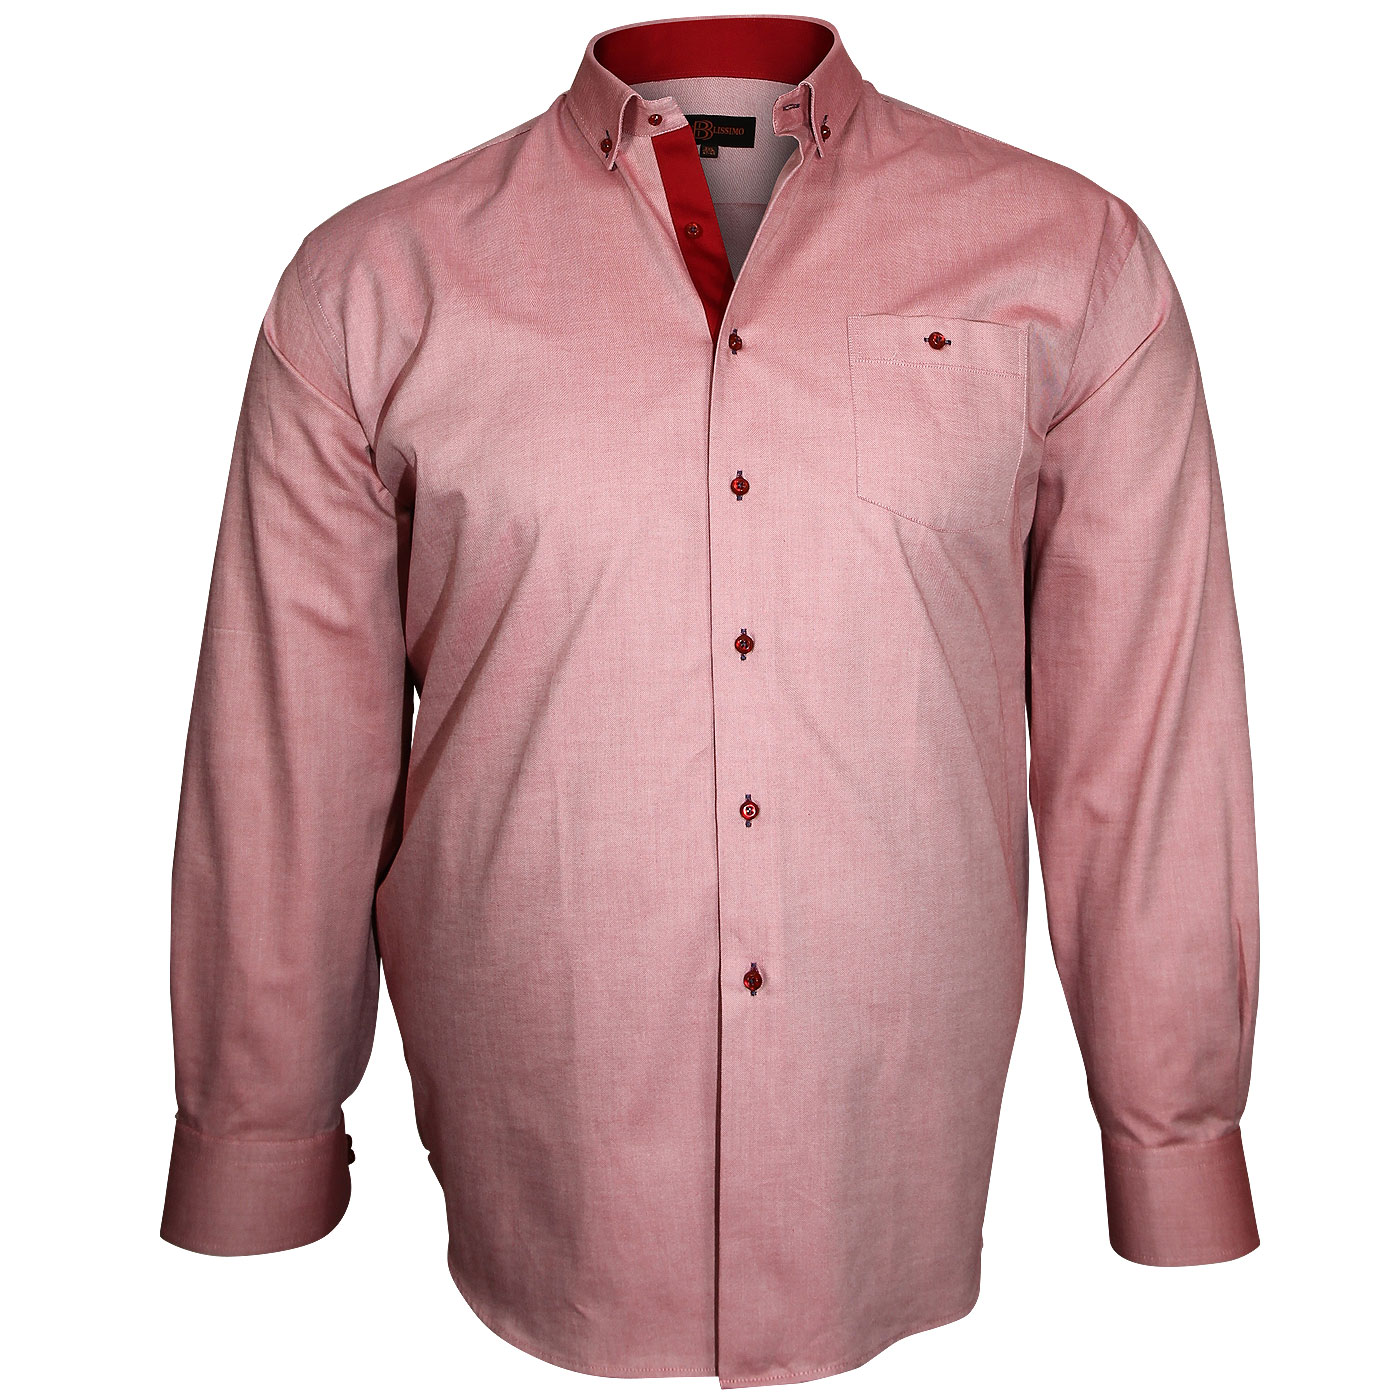 Choose the Right Size Your Man Shirt by Webmenshirts